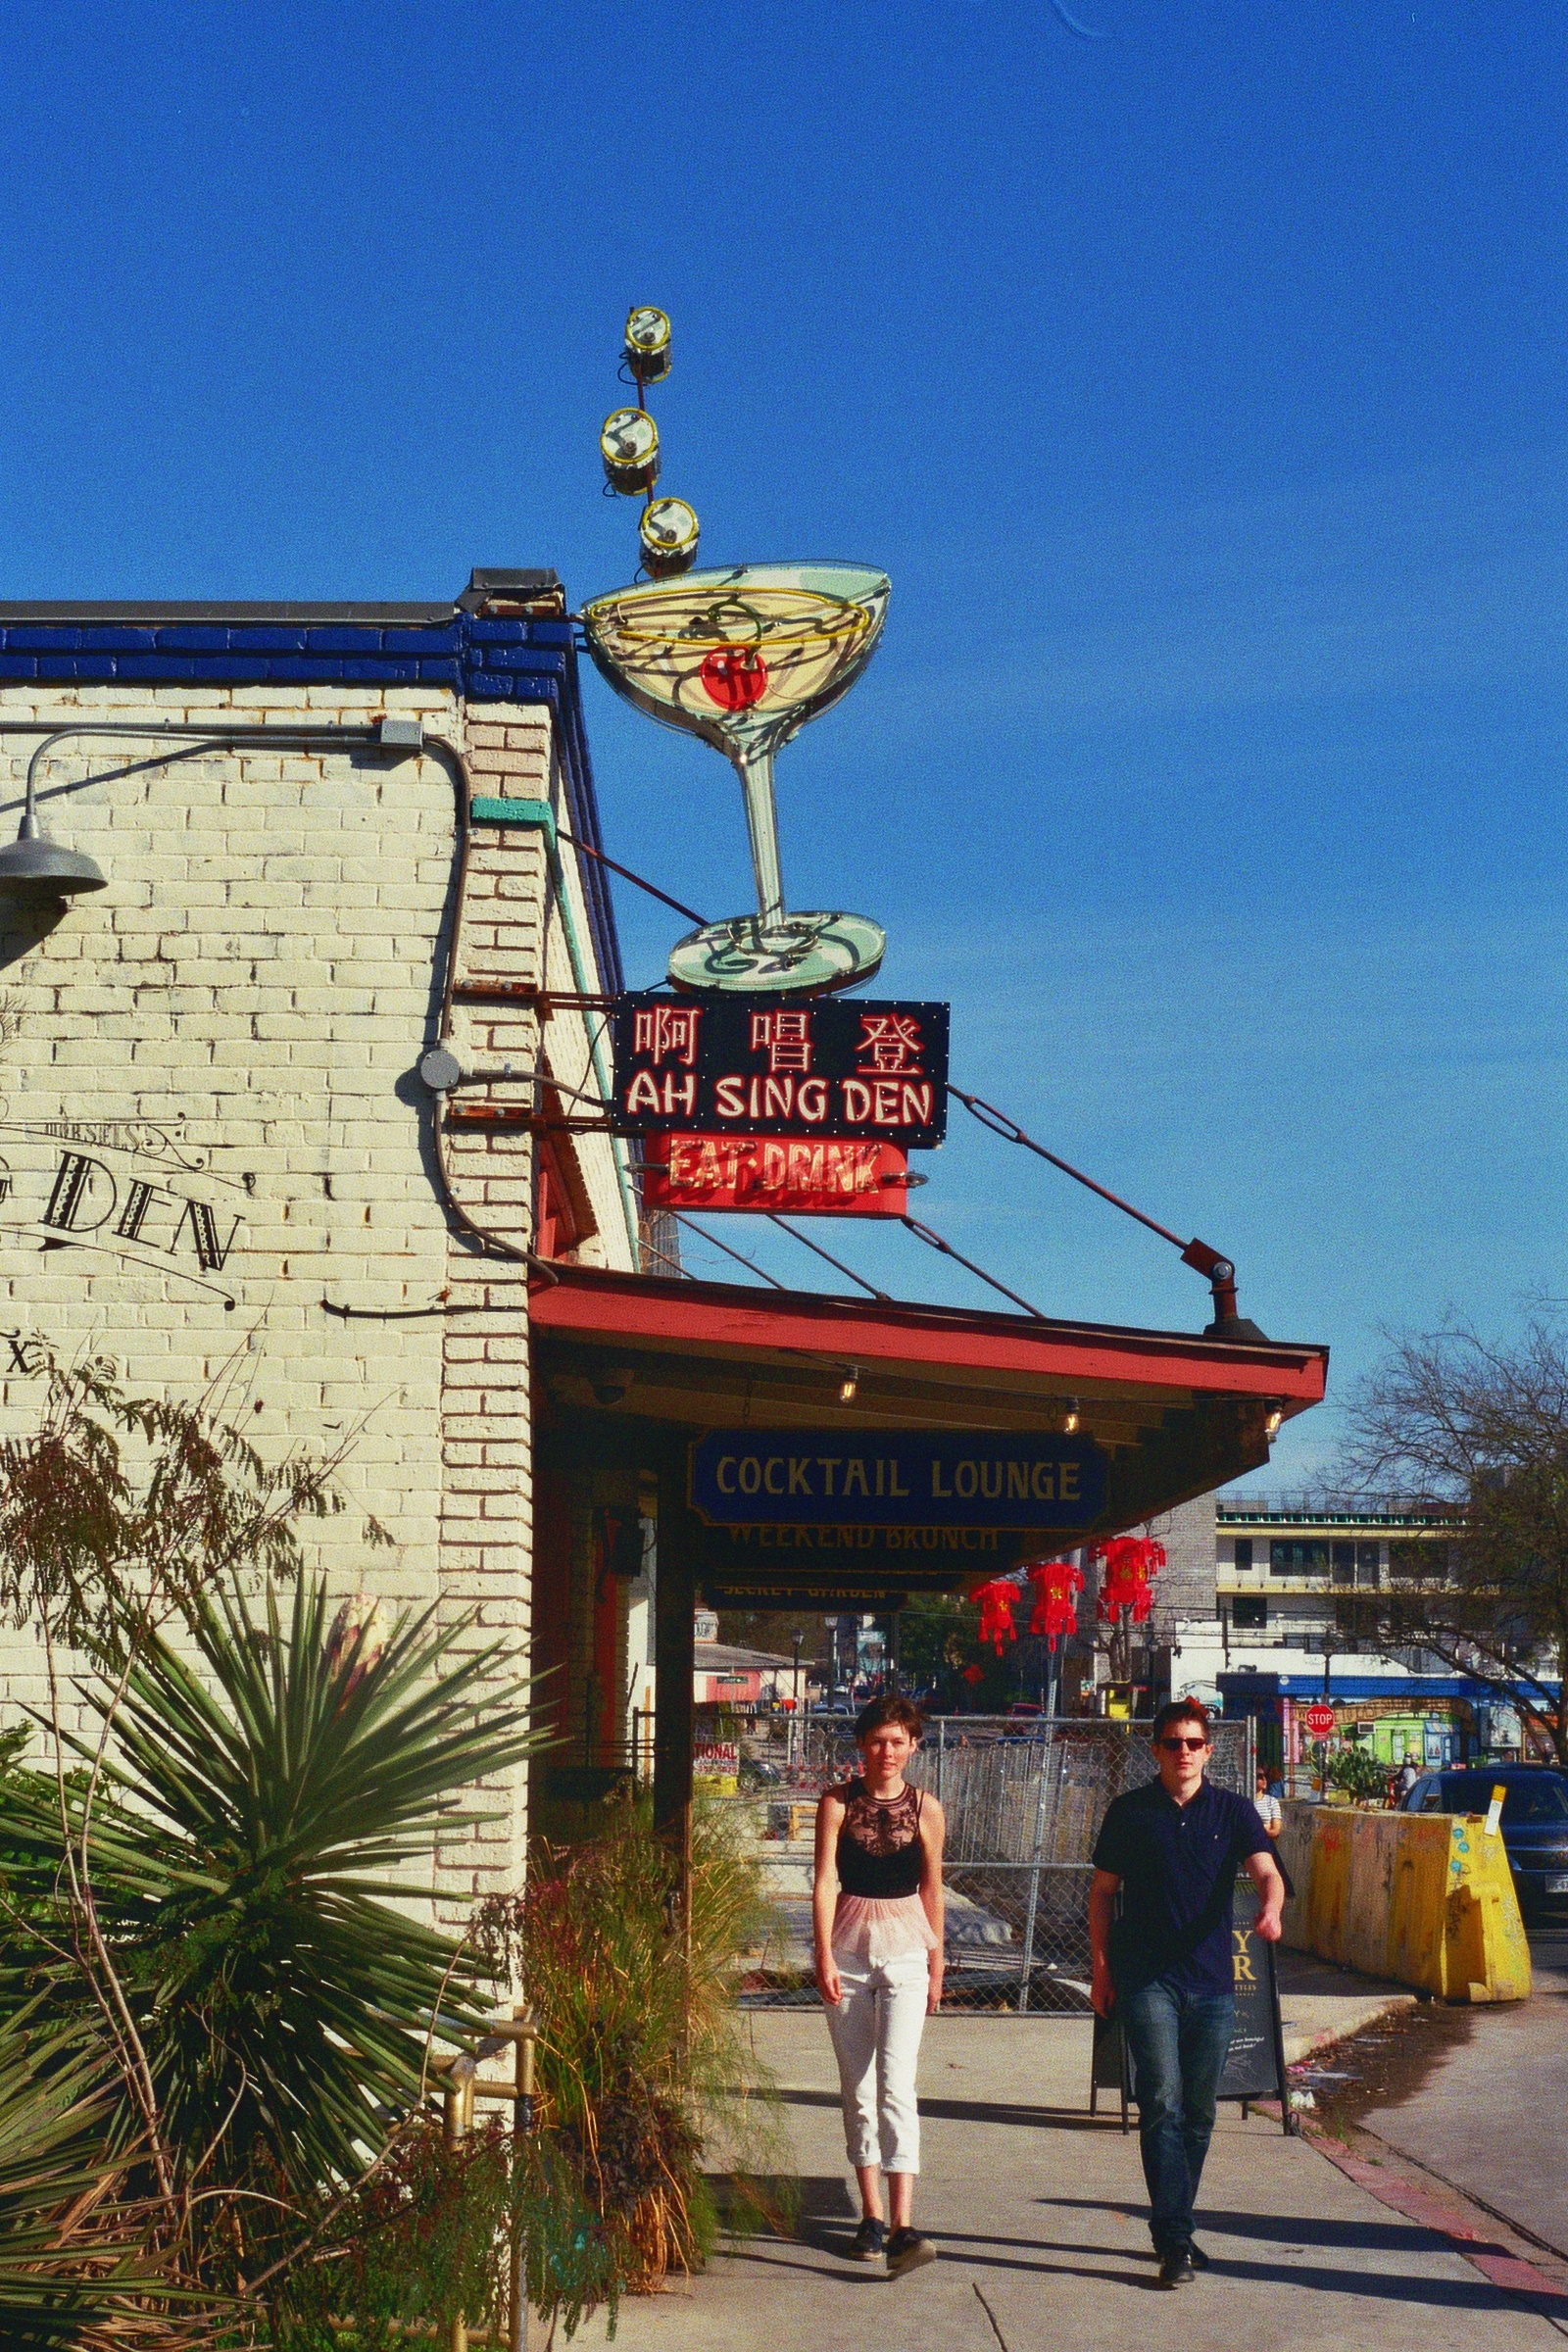 Ah Sing Den, an Asian-inspired cocktail lounge and restaurant on East 6th St.  Austin, TX